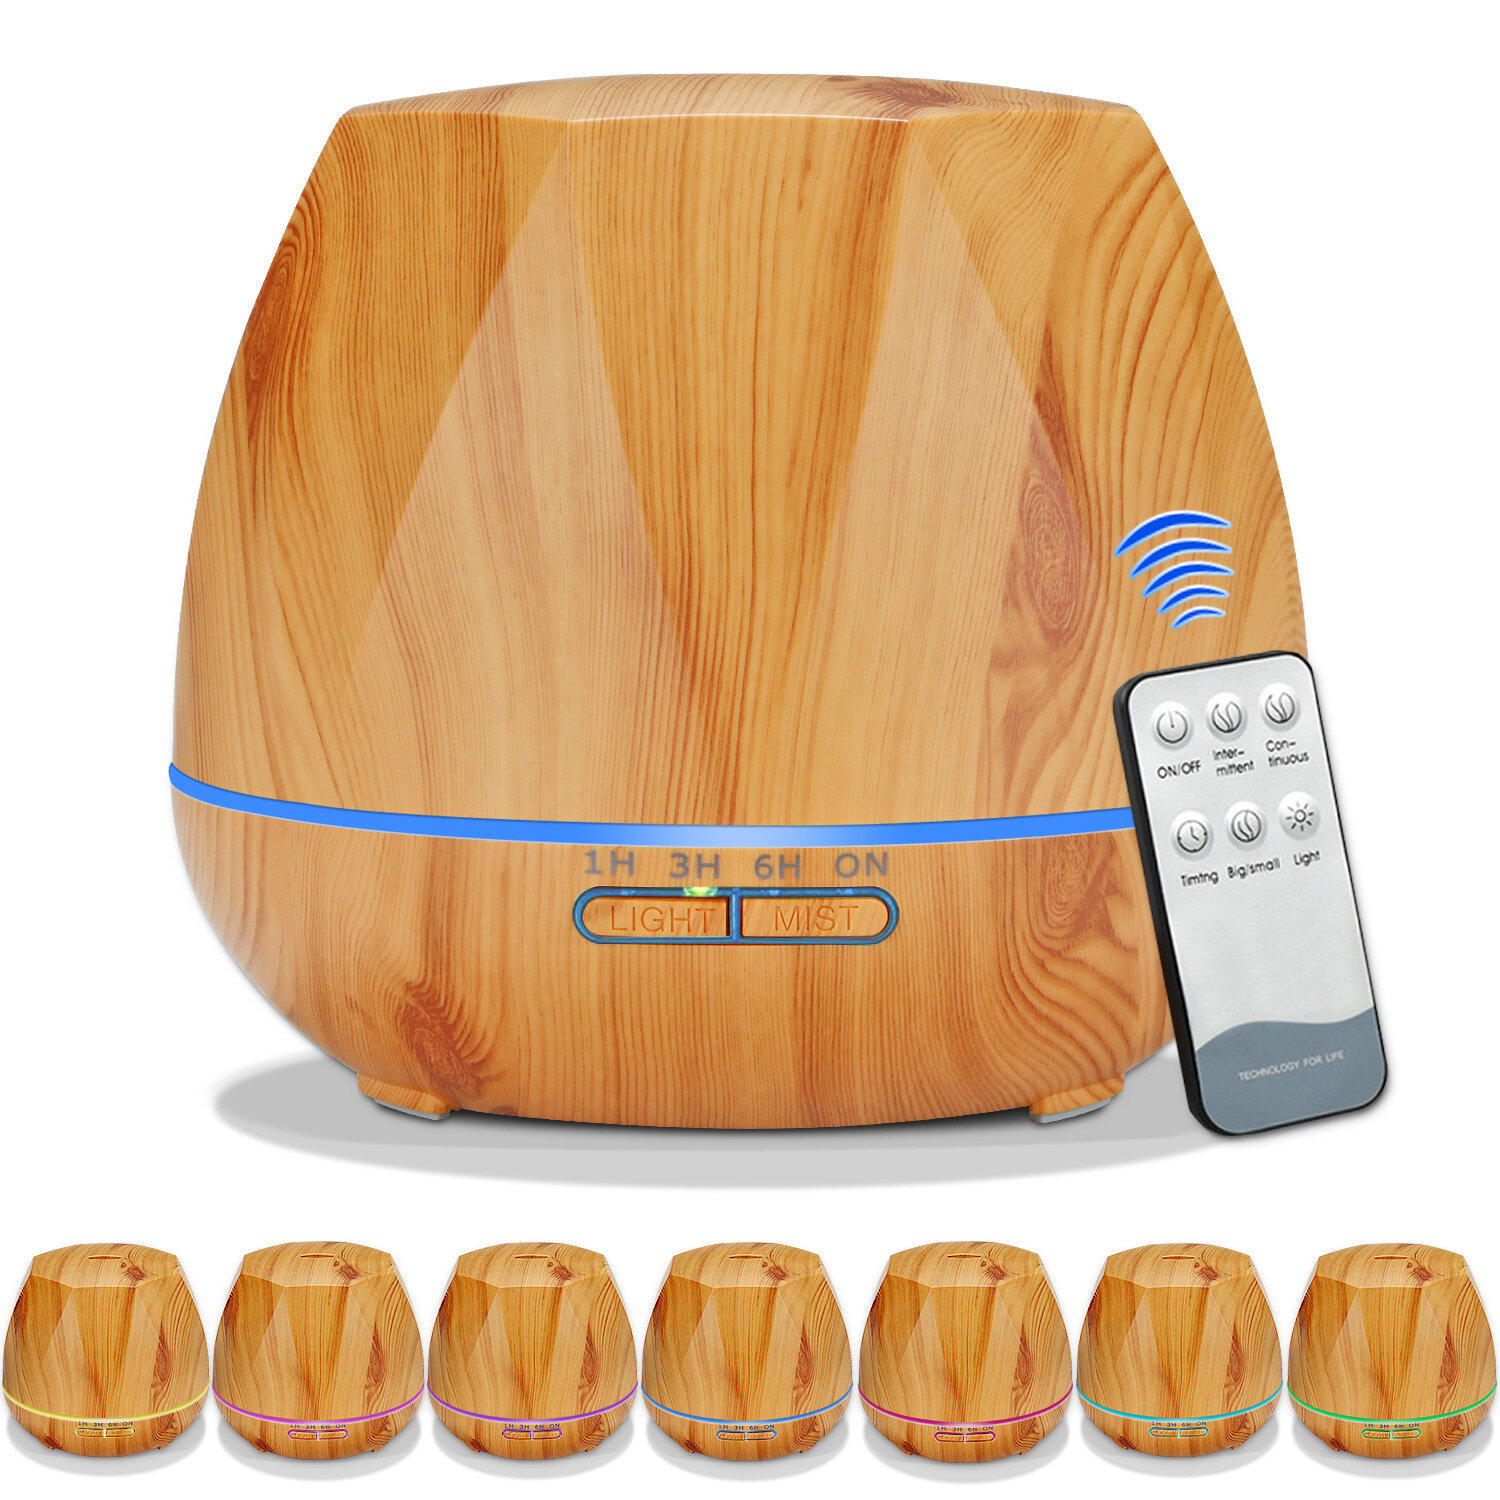 Wood Grain Rhombus Ultrasonic Air Humidifier Aroma Essential Oil Diffuser Aromatherapy Atomizer